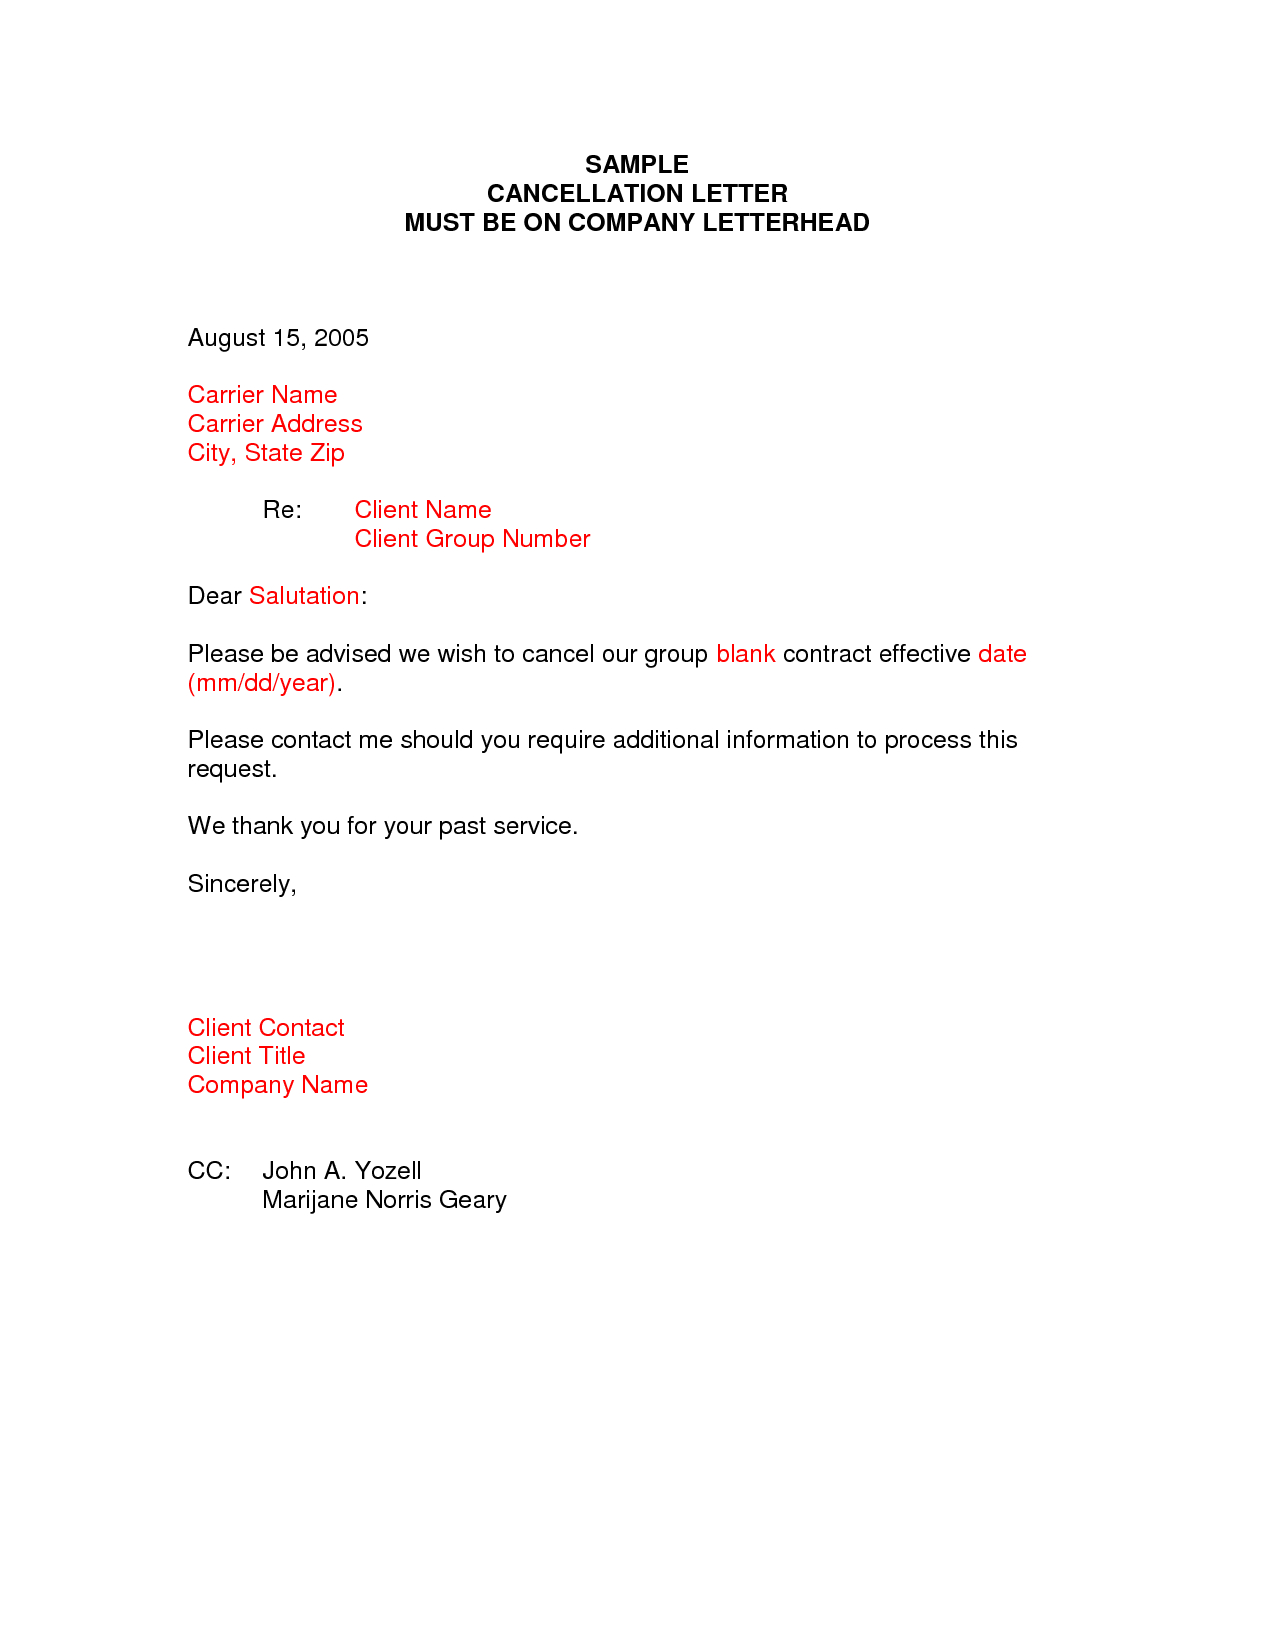 Contract Cancellation Letter Template Free - Sample Termination Letter format Business Case Examples Free Cover